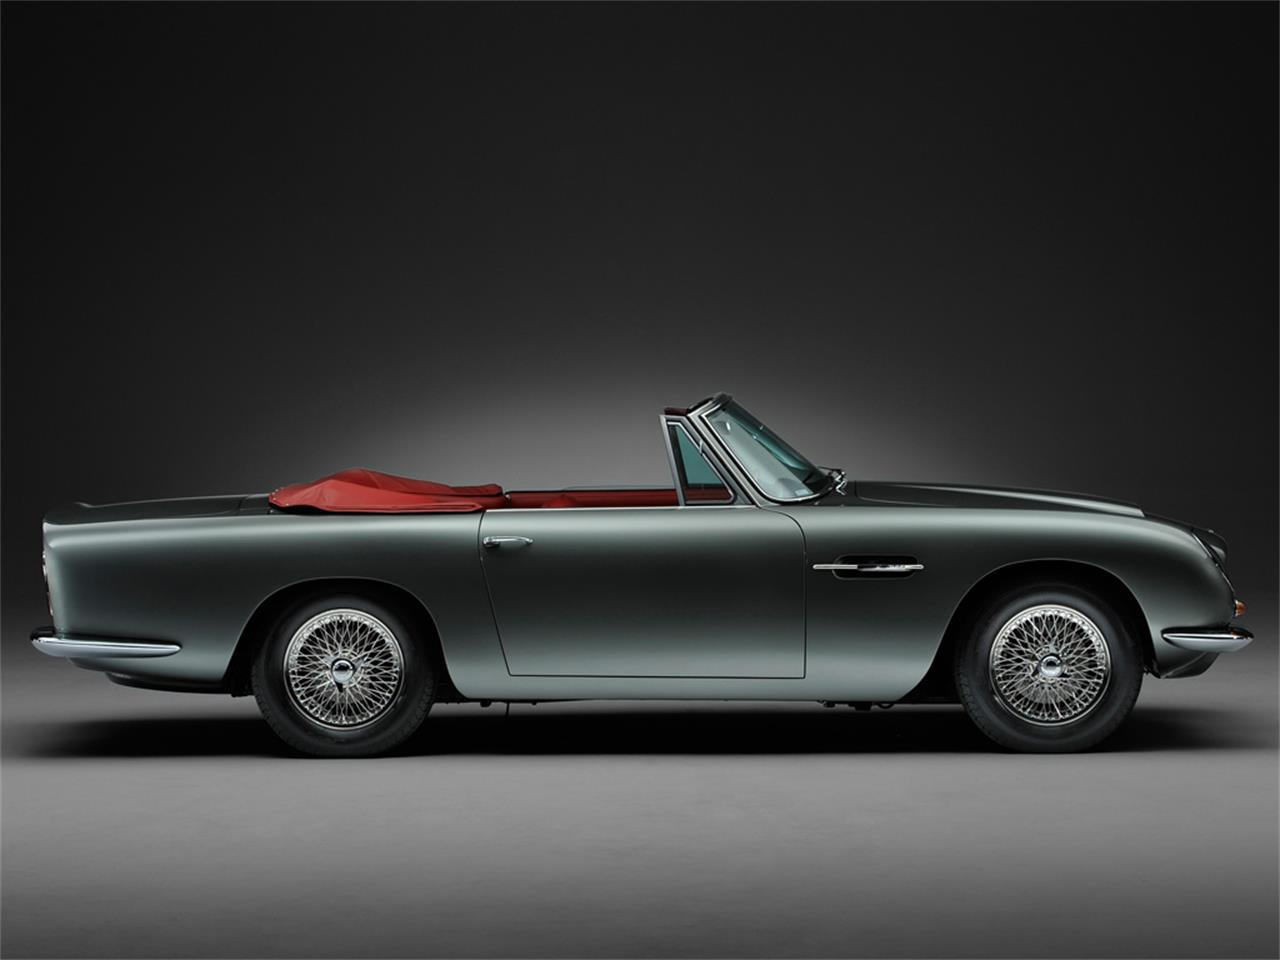 Large Picture of Classic 1967 DB6 MKI Vantage Volante located in Maldon, Essex  Auction Vehicle Offered by JD Classics LTD - IVCB